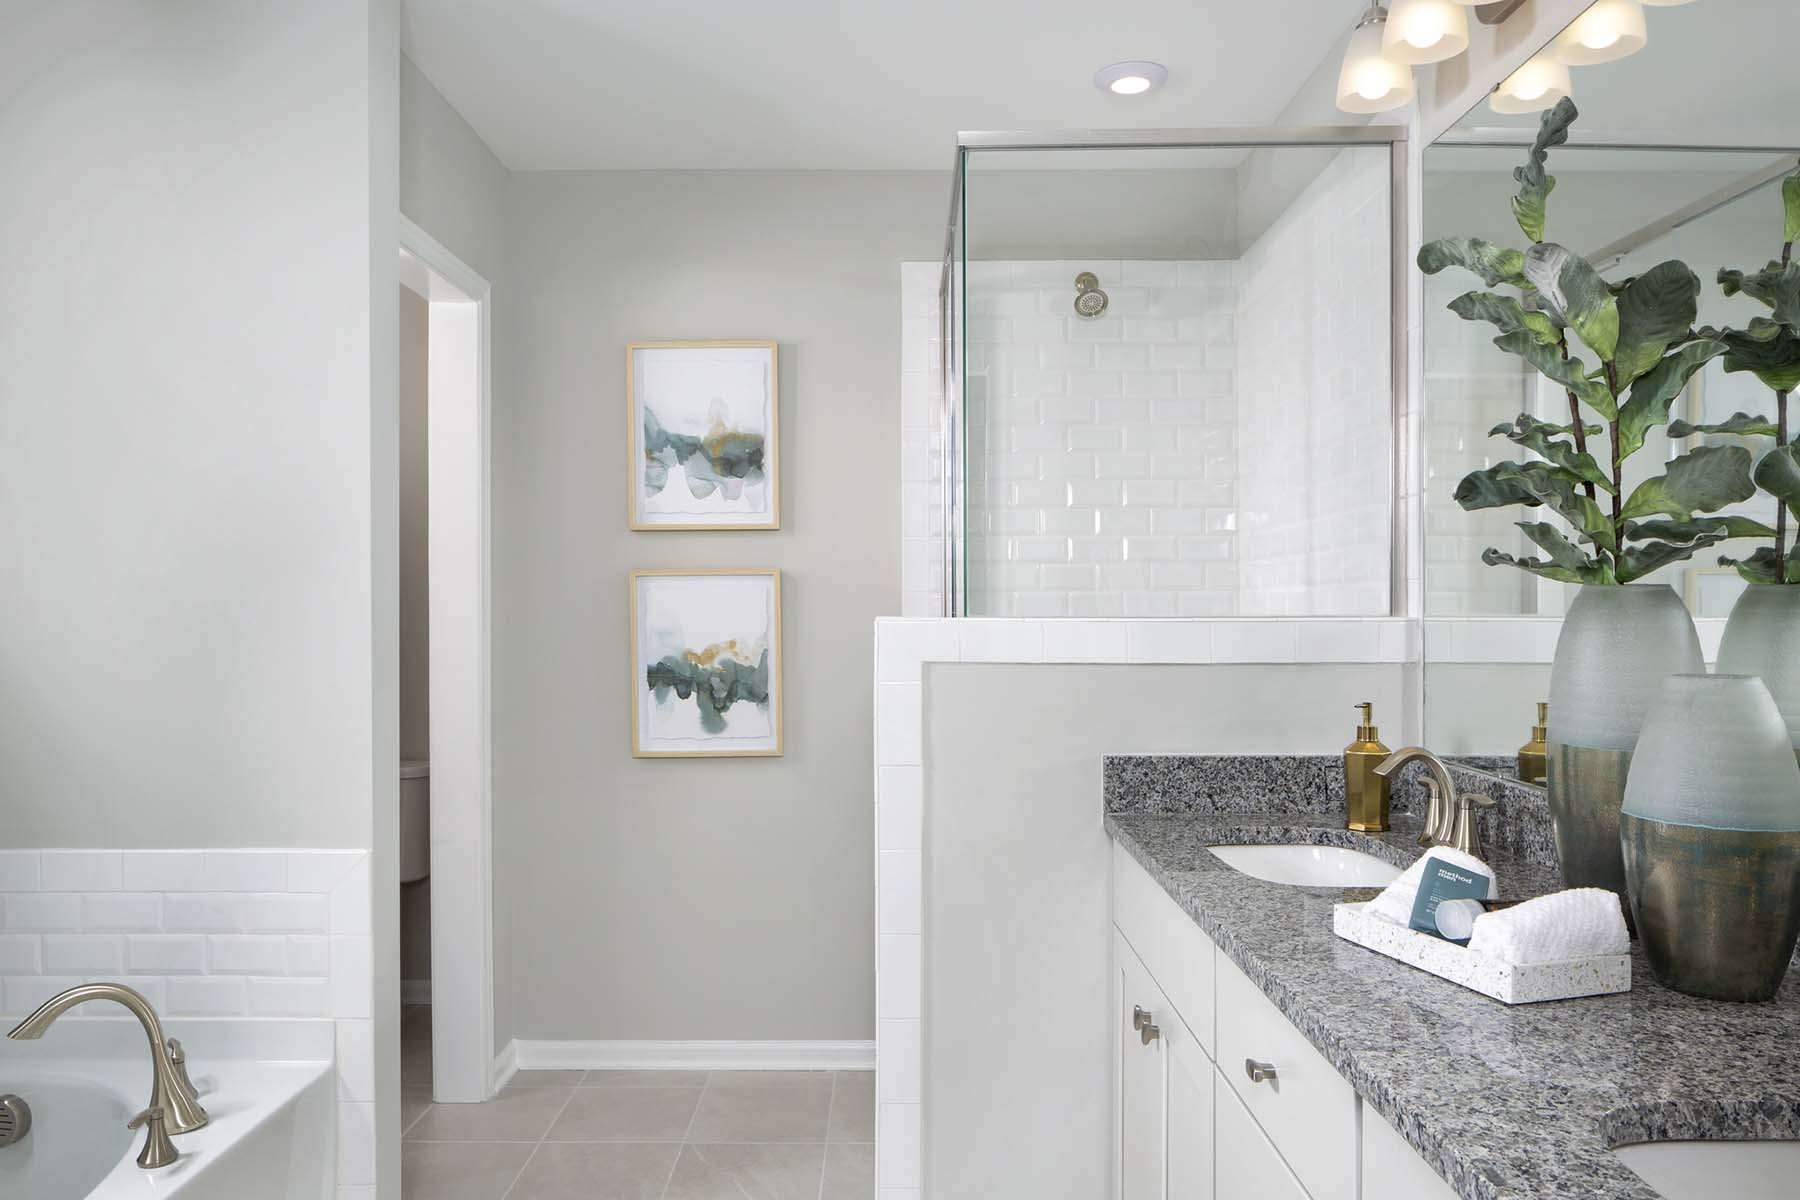 Rodric Plan Bathroom_Master Bath at Galloway Park in Charlotte North Carolina by Mattamy Homes